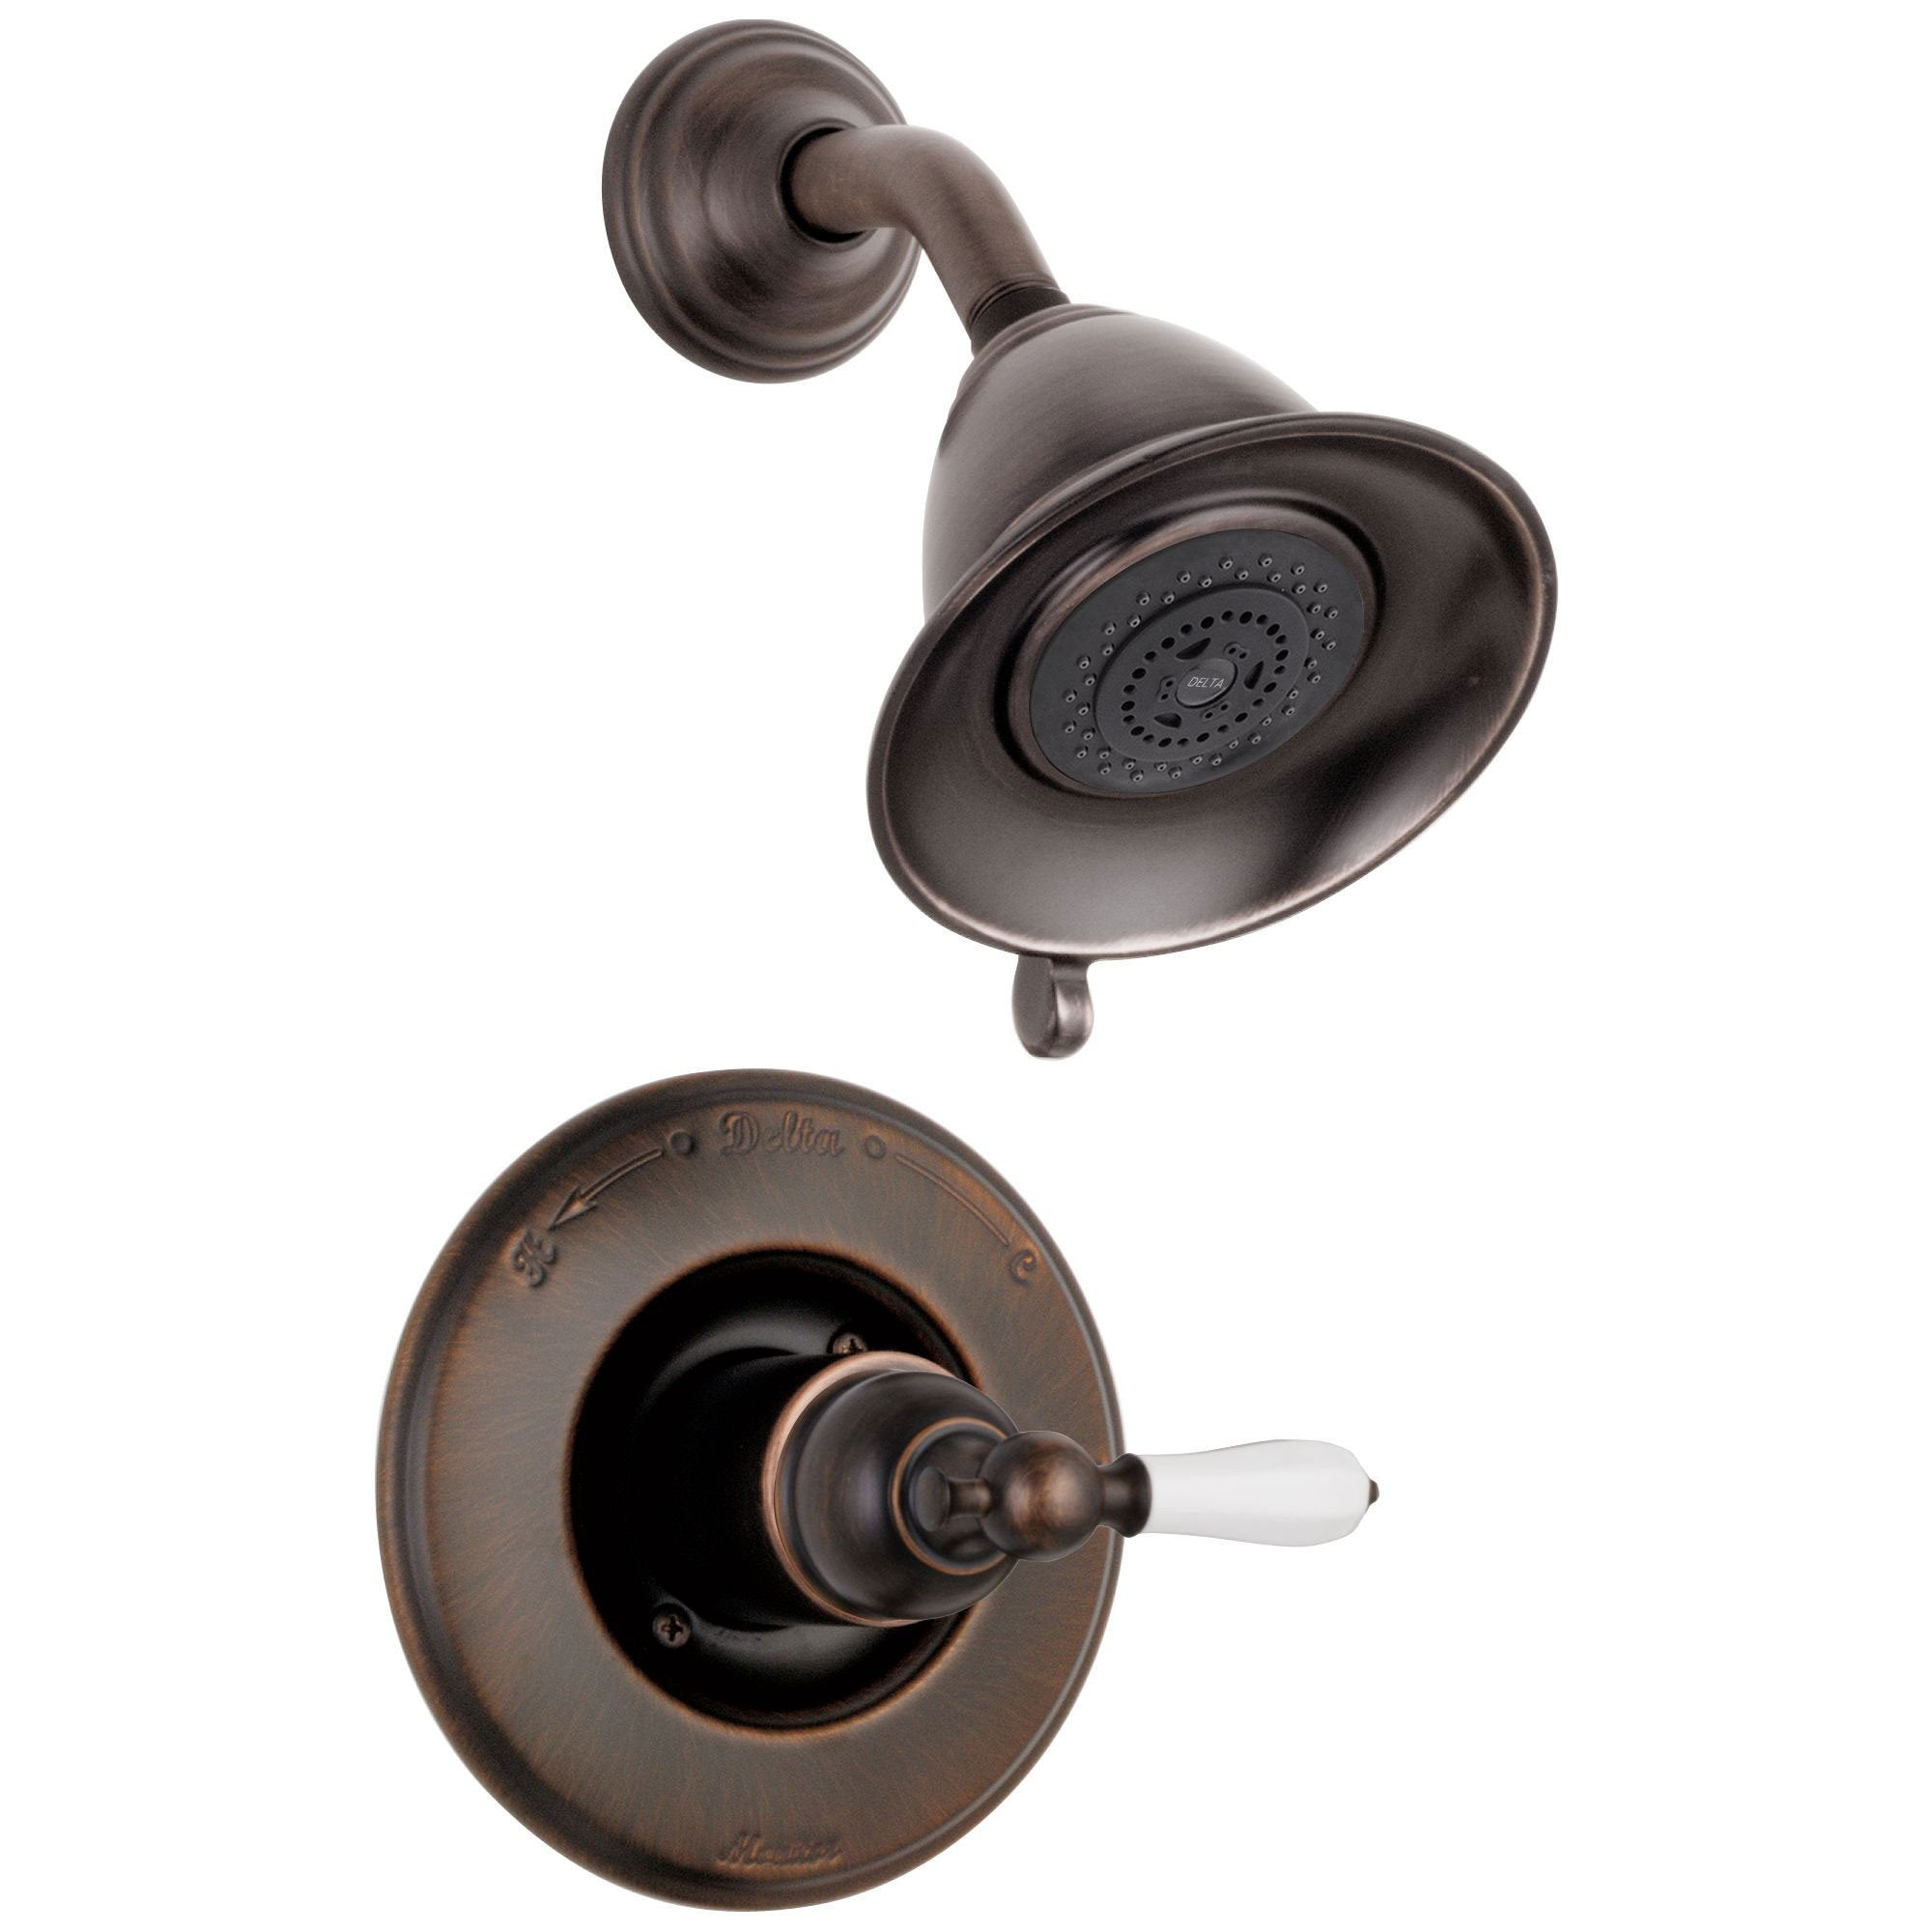 Delta Traditional Victorian Venetian Bronze Finish 14 Series Shower Only Faucet INCLUDES Rough-in Valve with Stops and White Lever Handle D1197V